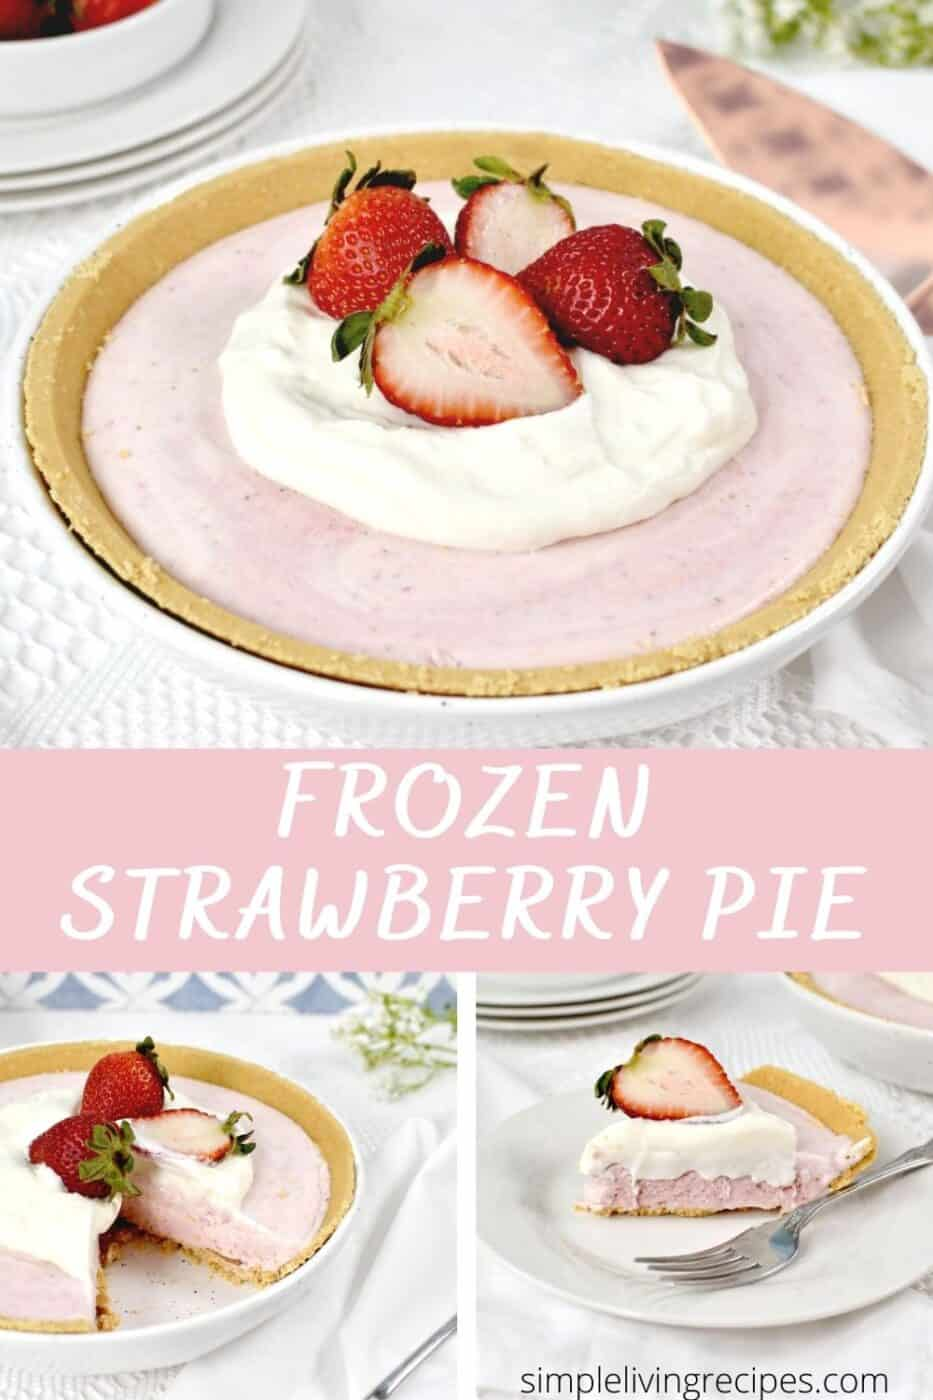 Pin for Pinterest with photos of the frozen strawberry pie